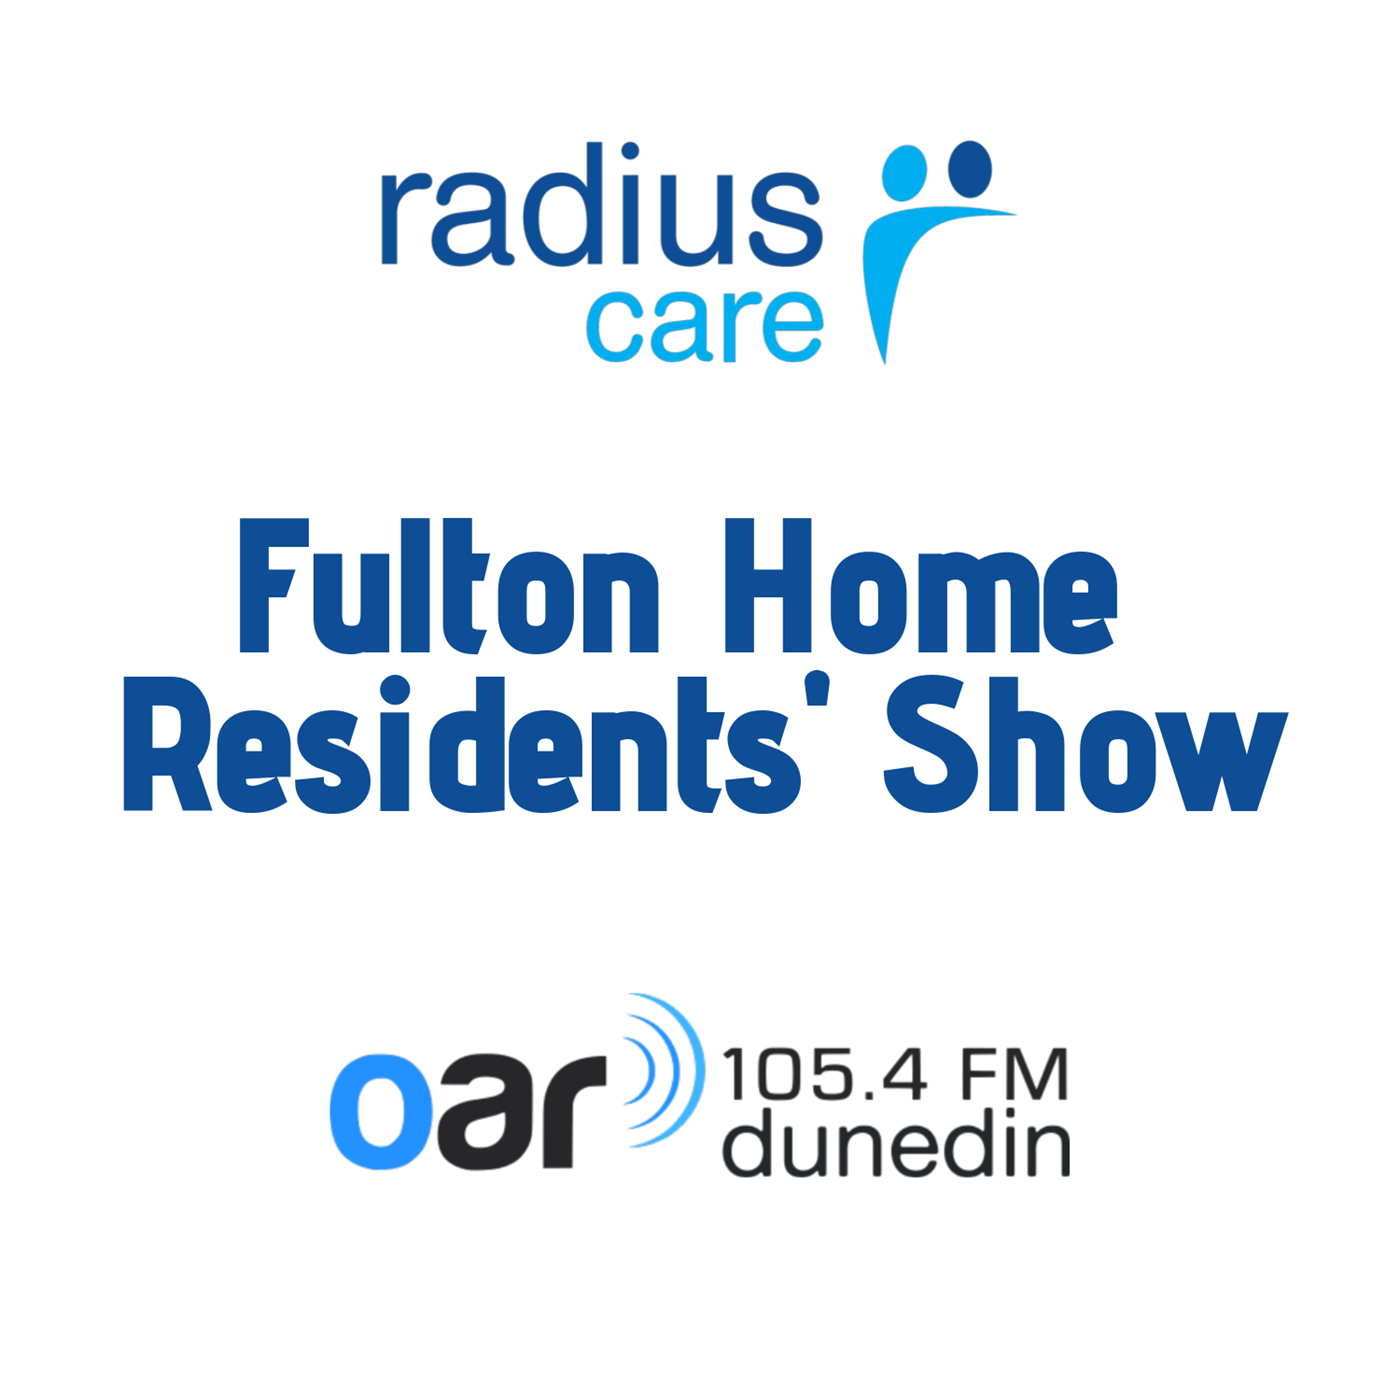 Fulton Home Residents' Show - 22-04-2021 - Requests continued